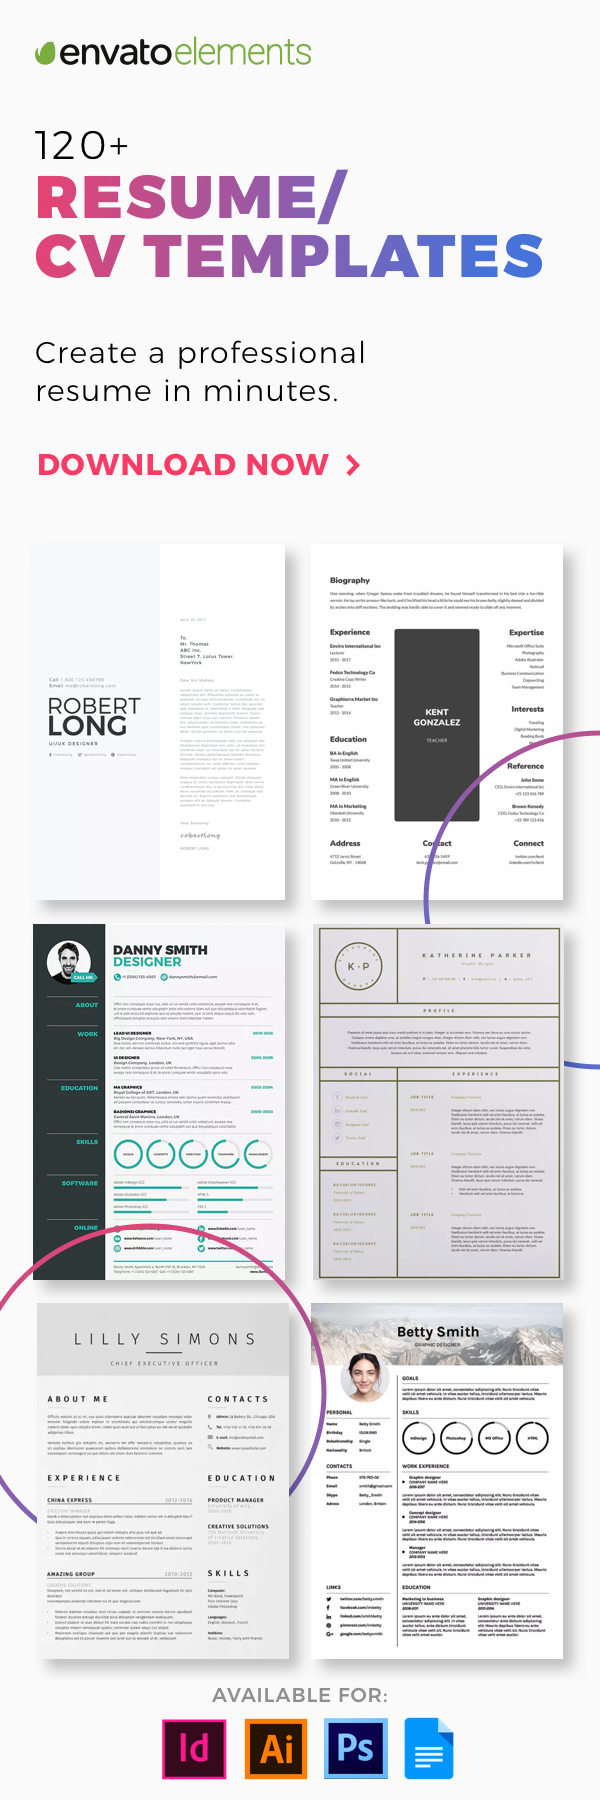 Unlimited Downloads Of 2018 S Best Resume Templates Best Resume Template Cv Template Resume Tips